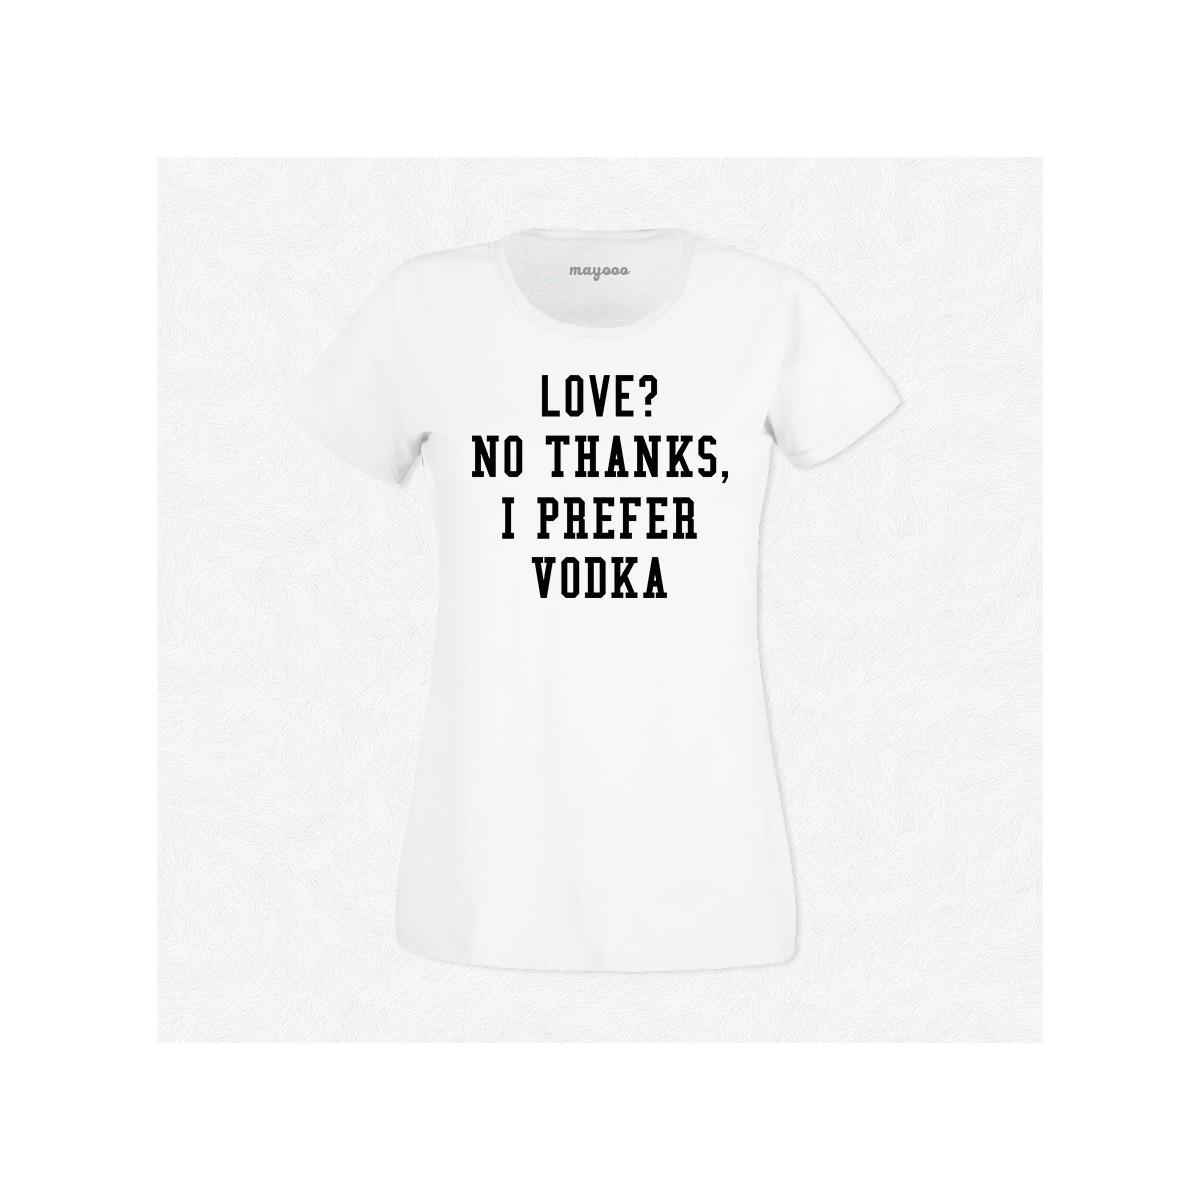 T-shirt I prefer vodka